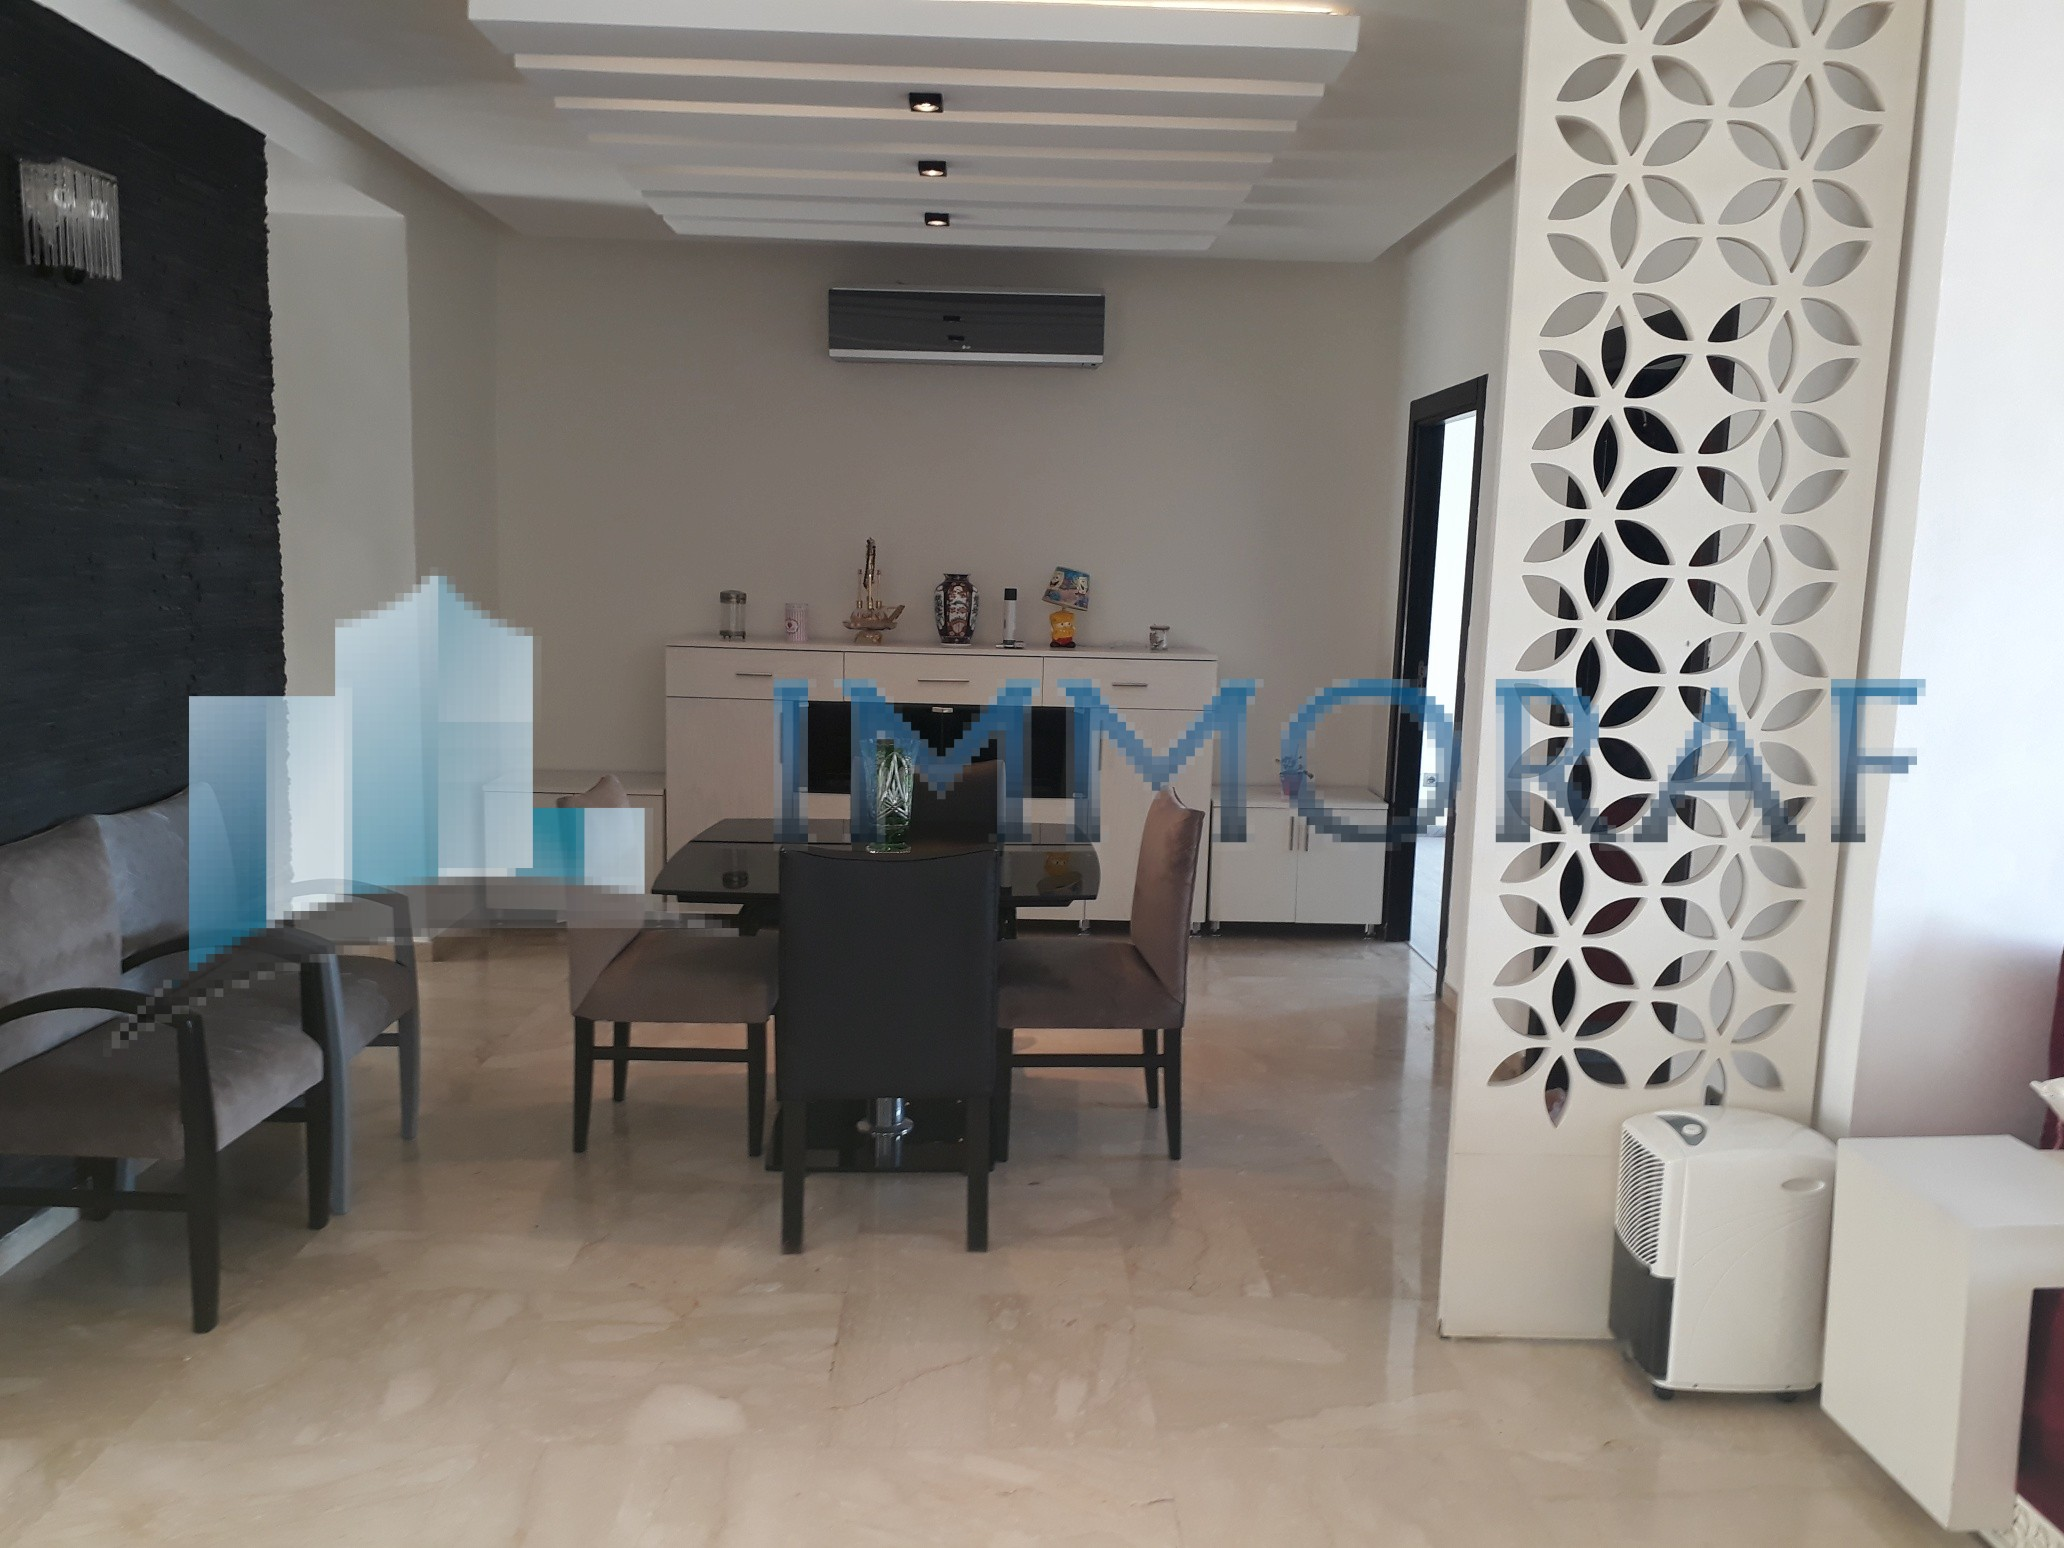 Magasin De Meuble Kenitra Location Appartement Meublé Ain Diab Casablanca Immoraf